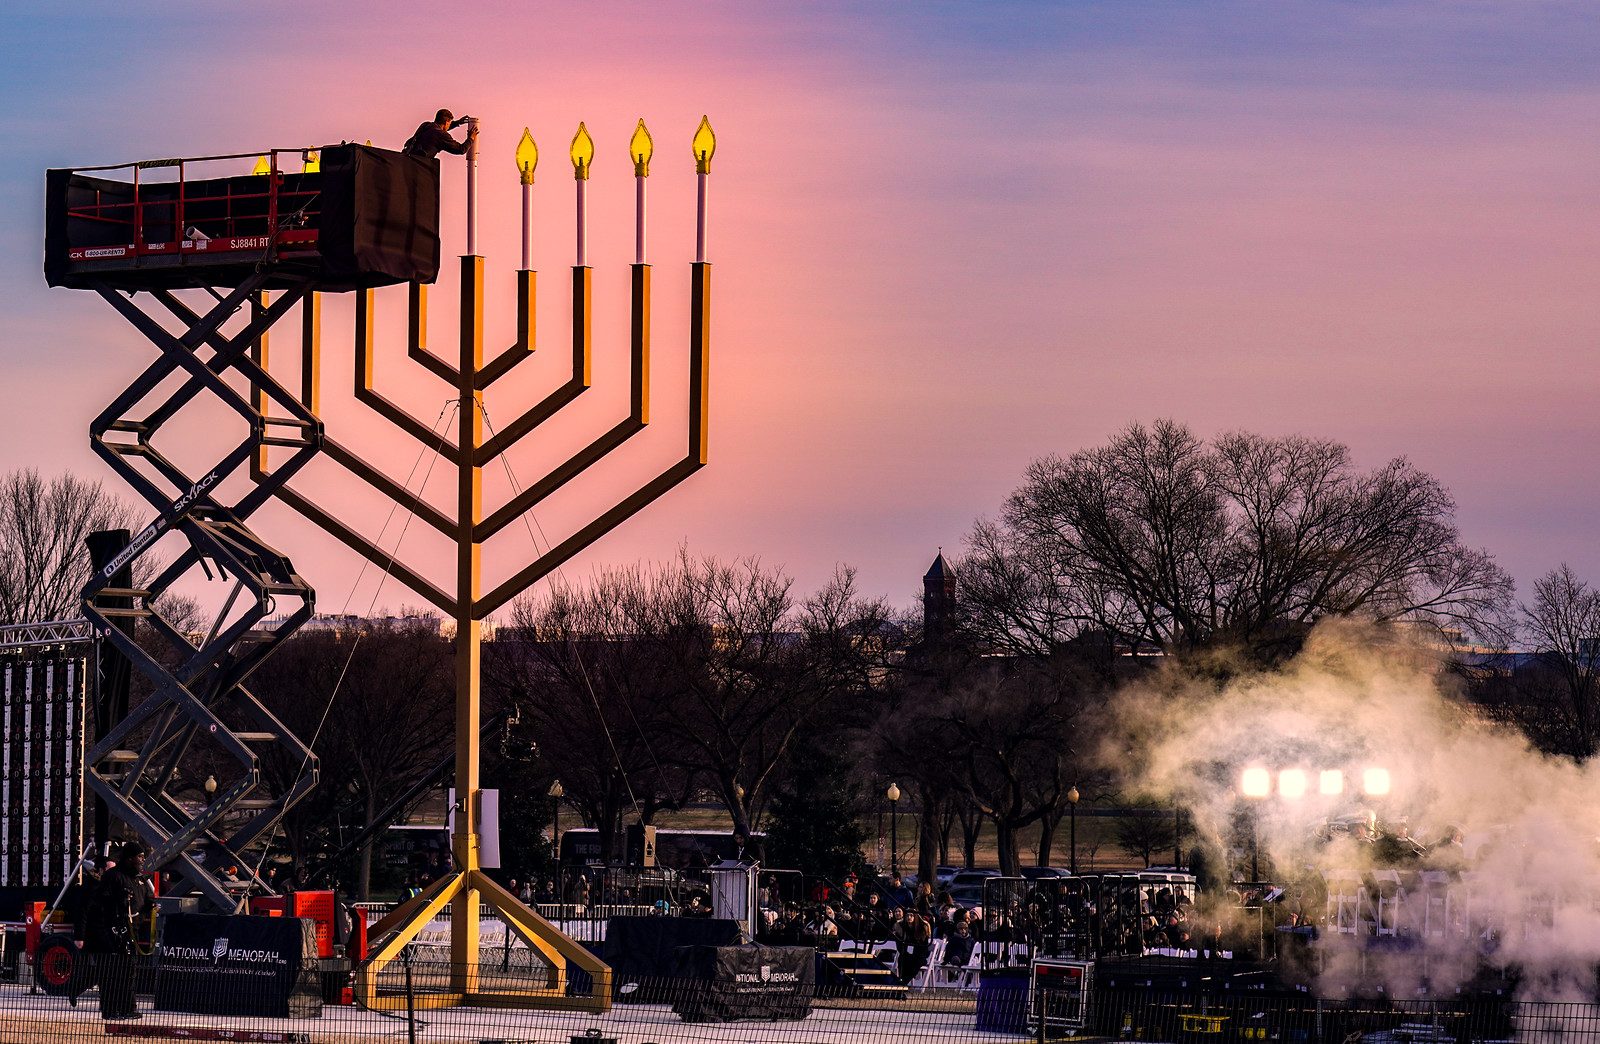 2019.12.22 National Menorah, Washington, DC USA 356 30032